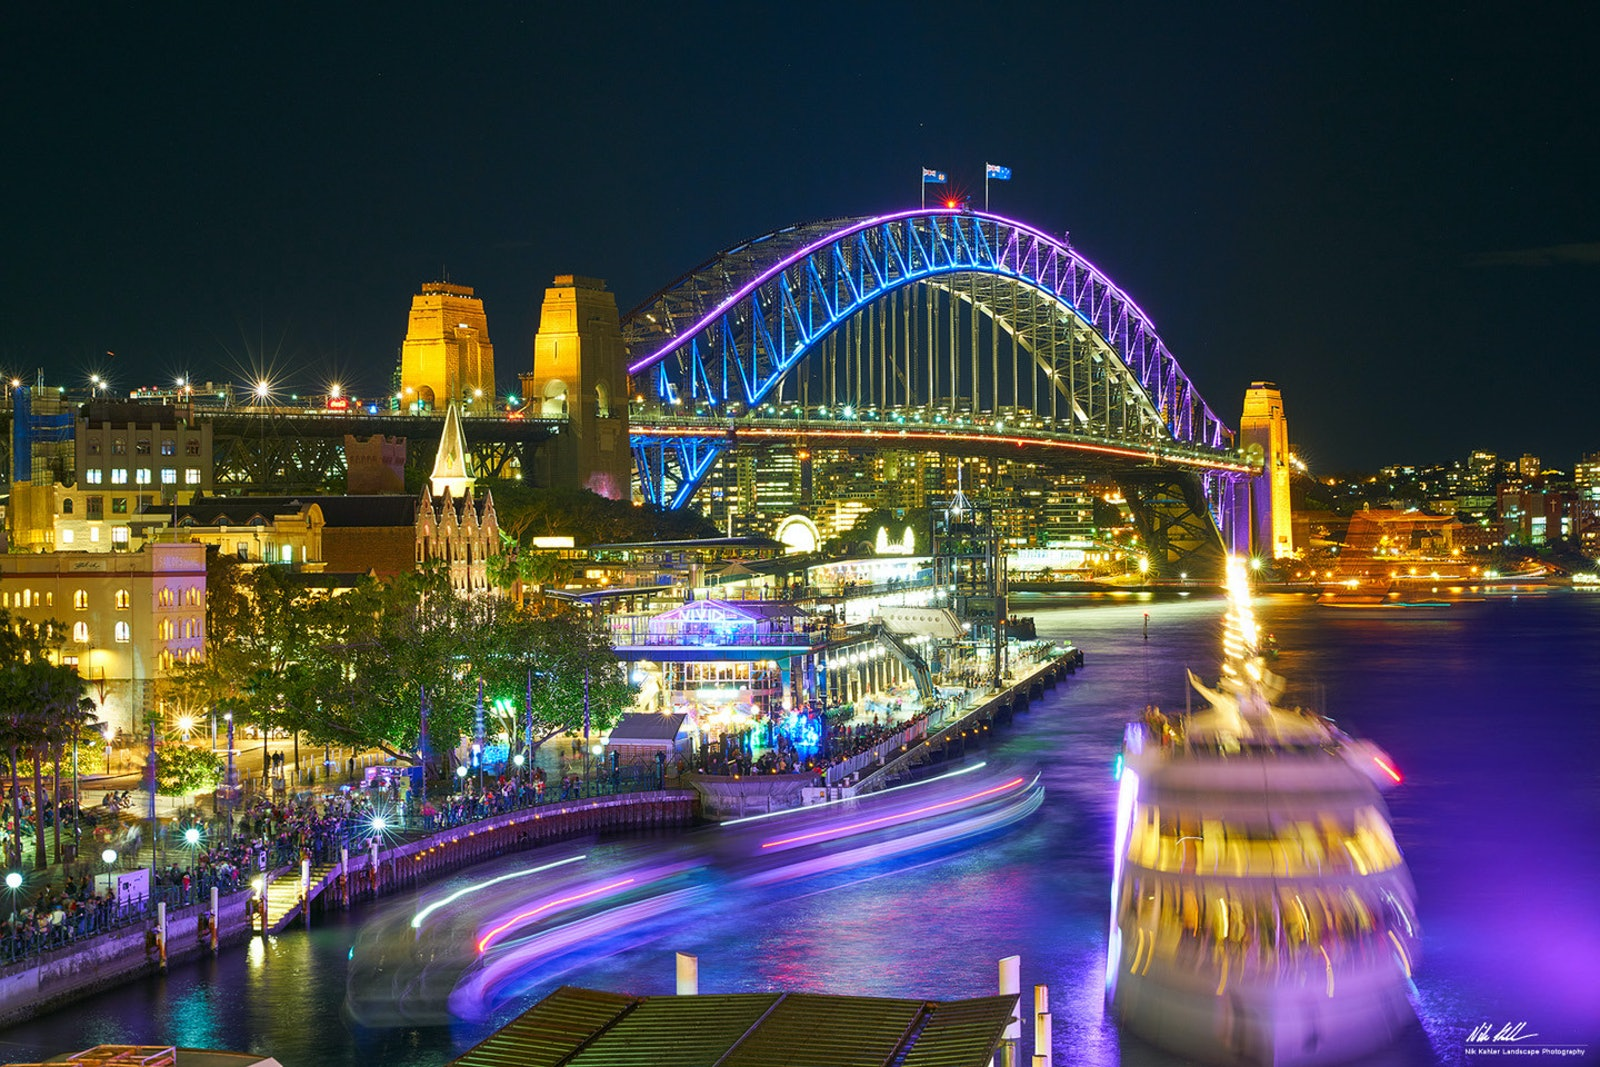 VividSydney2016